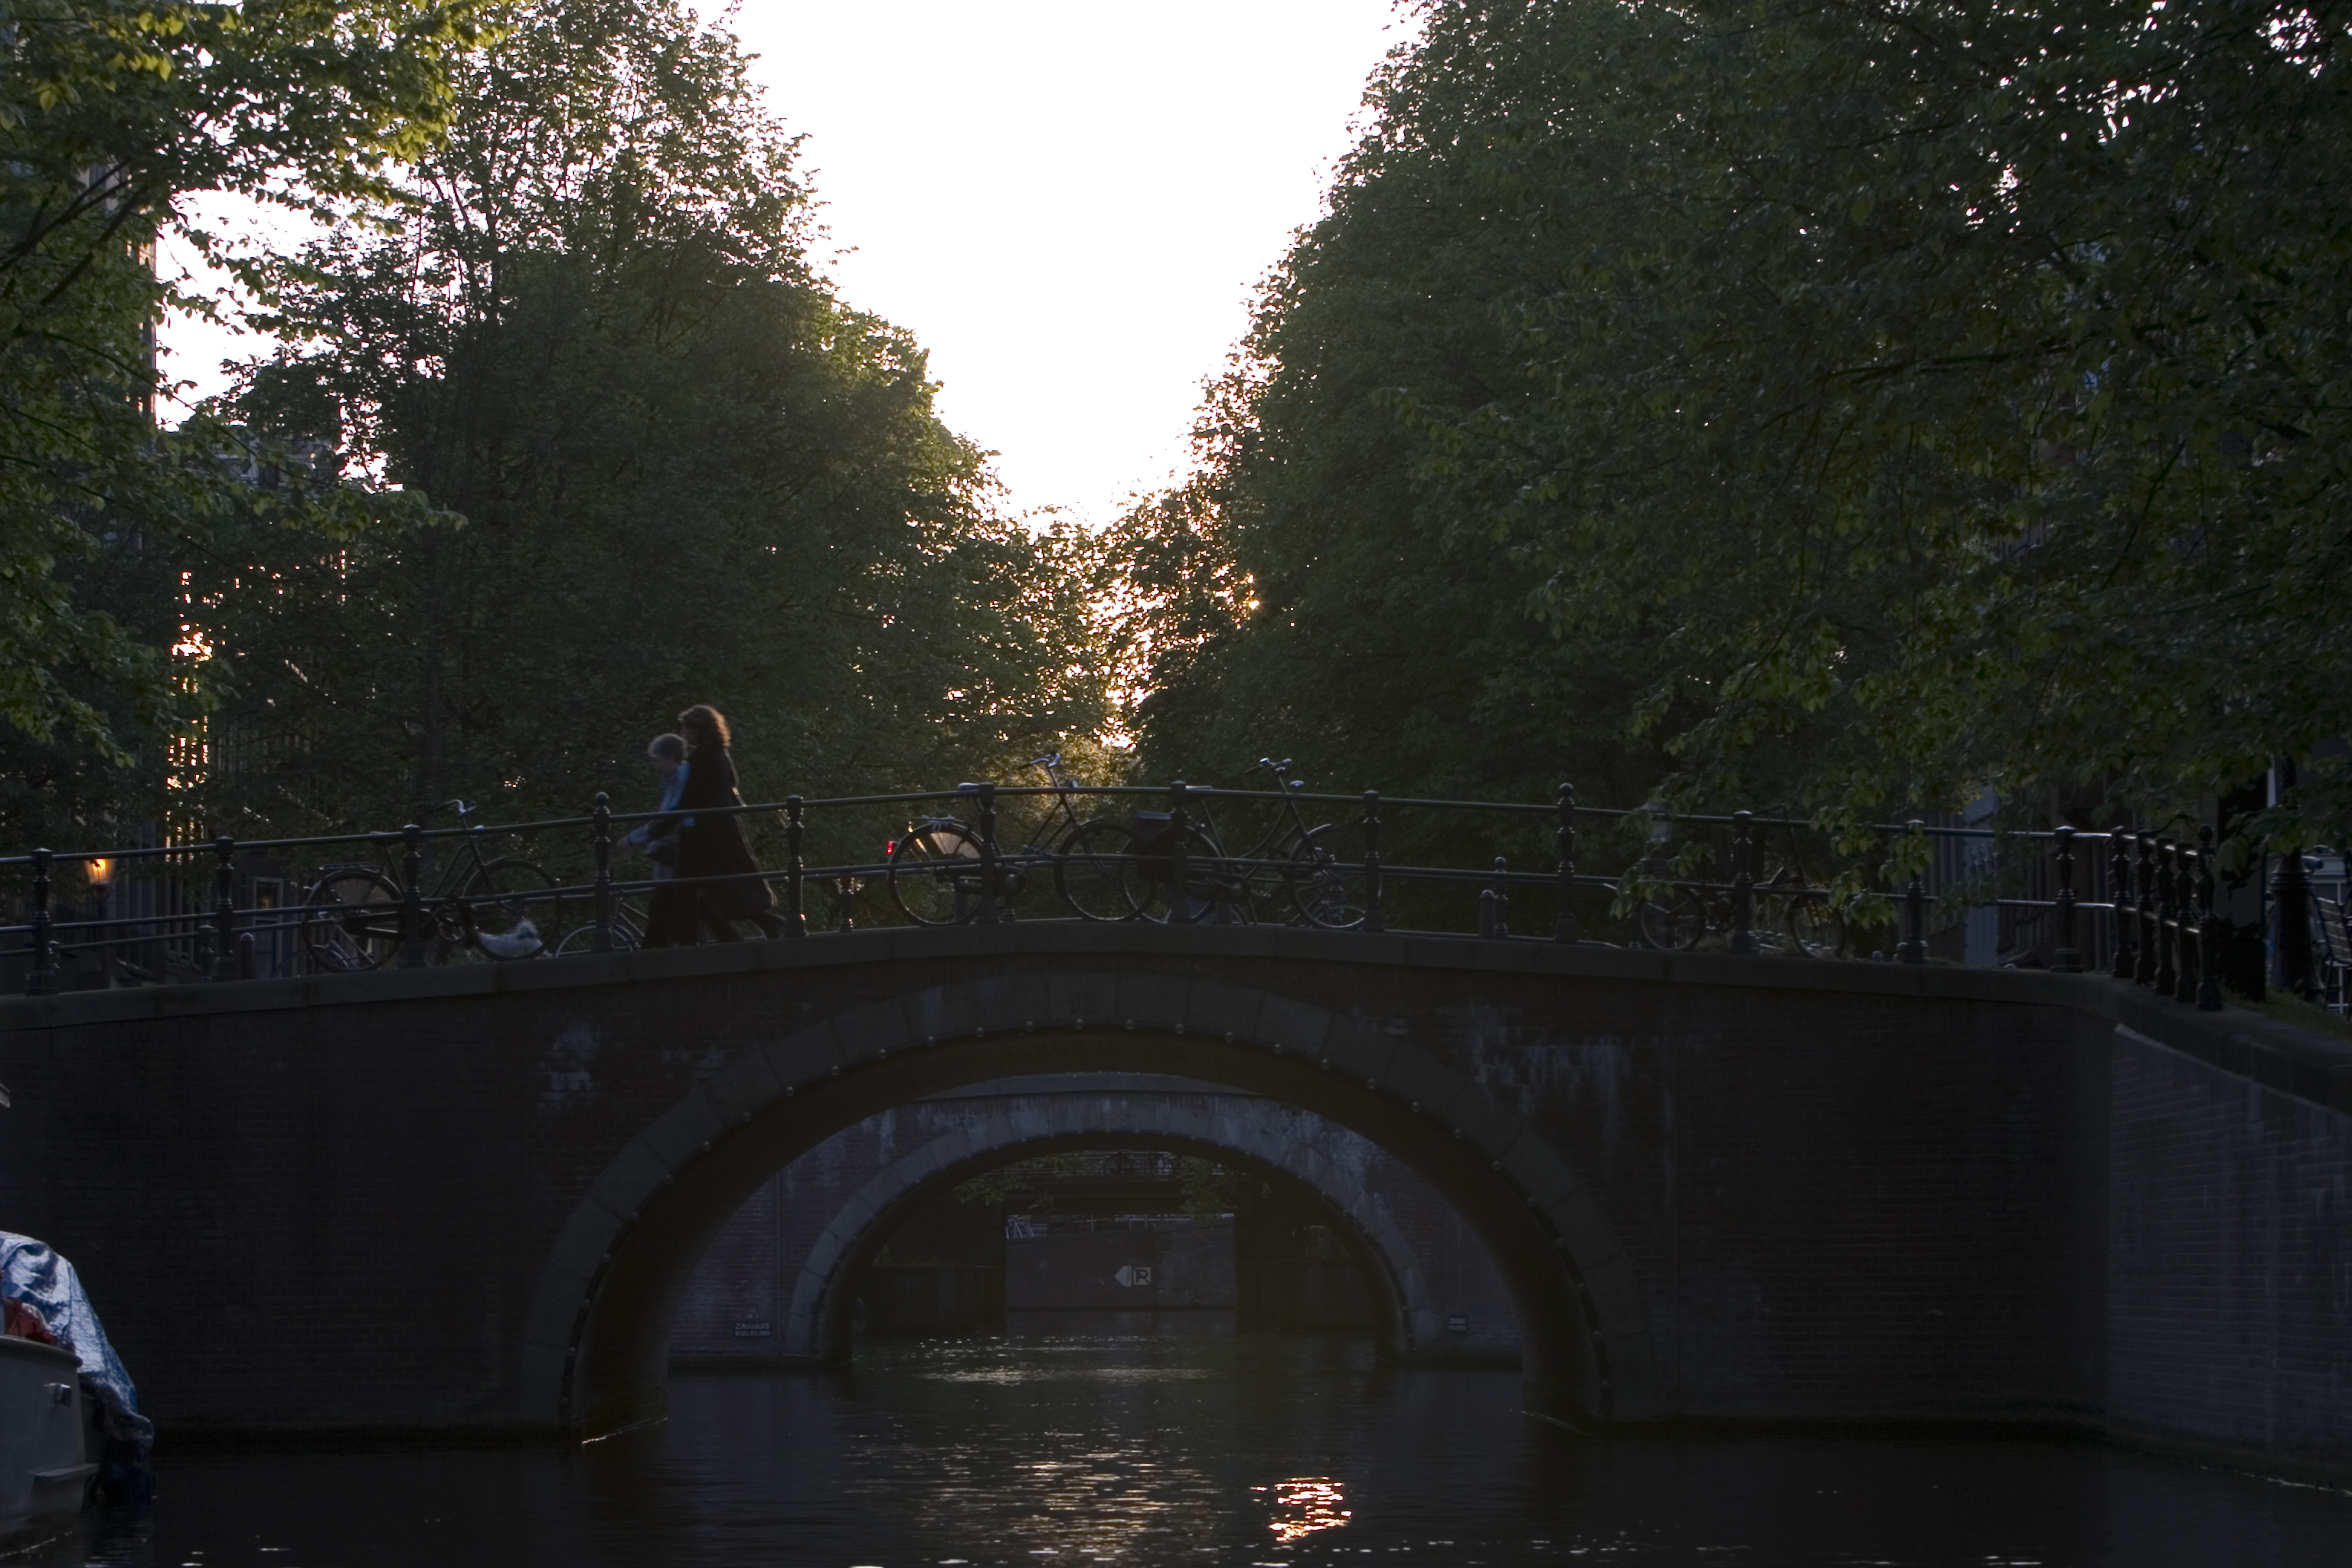 canal bridge city guard rail bike bikes bicycle bicycles city trees architecture exterior